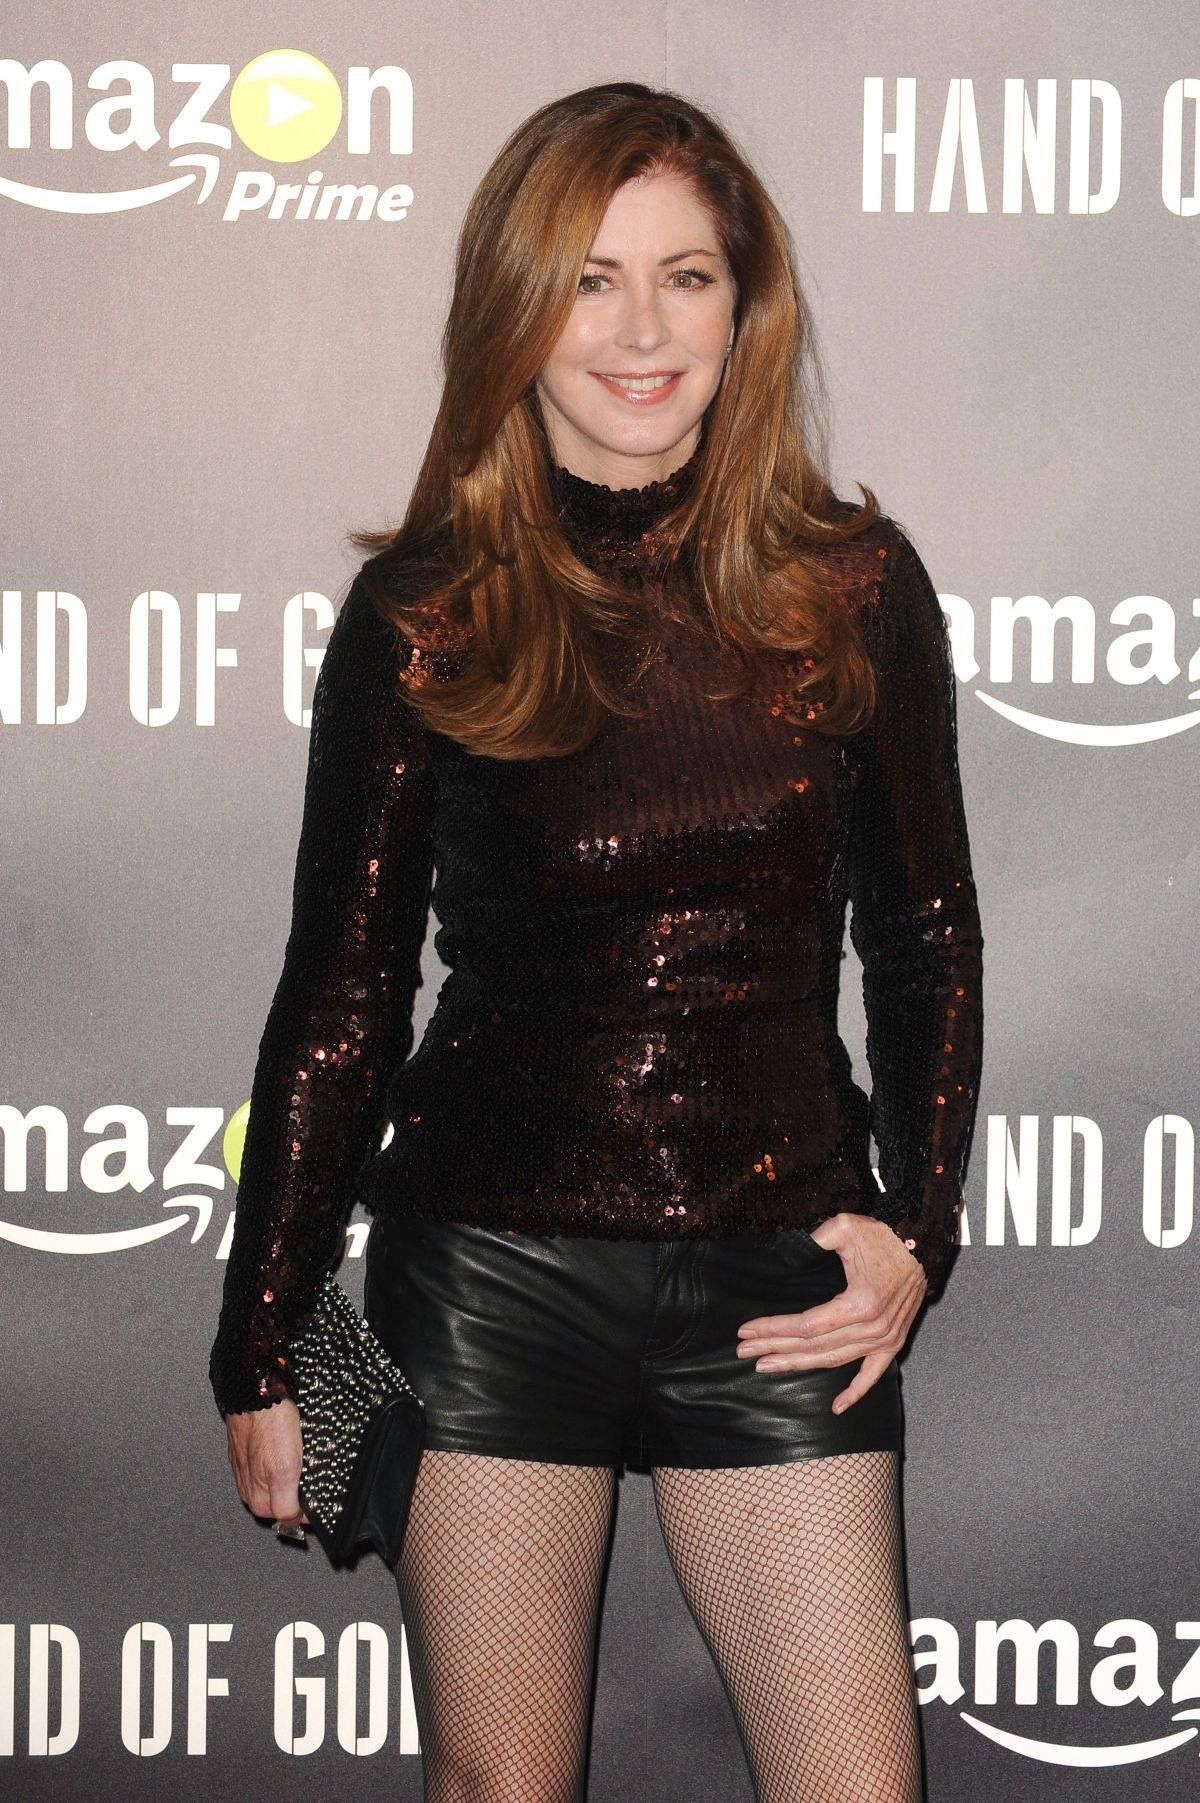 Dana Delany Nude Photos pinrachel judith reyes on my favorite actresses in 2019